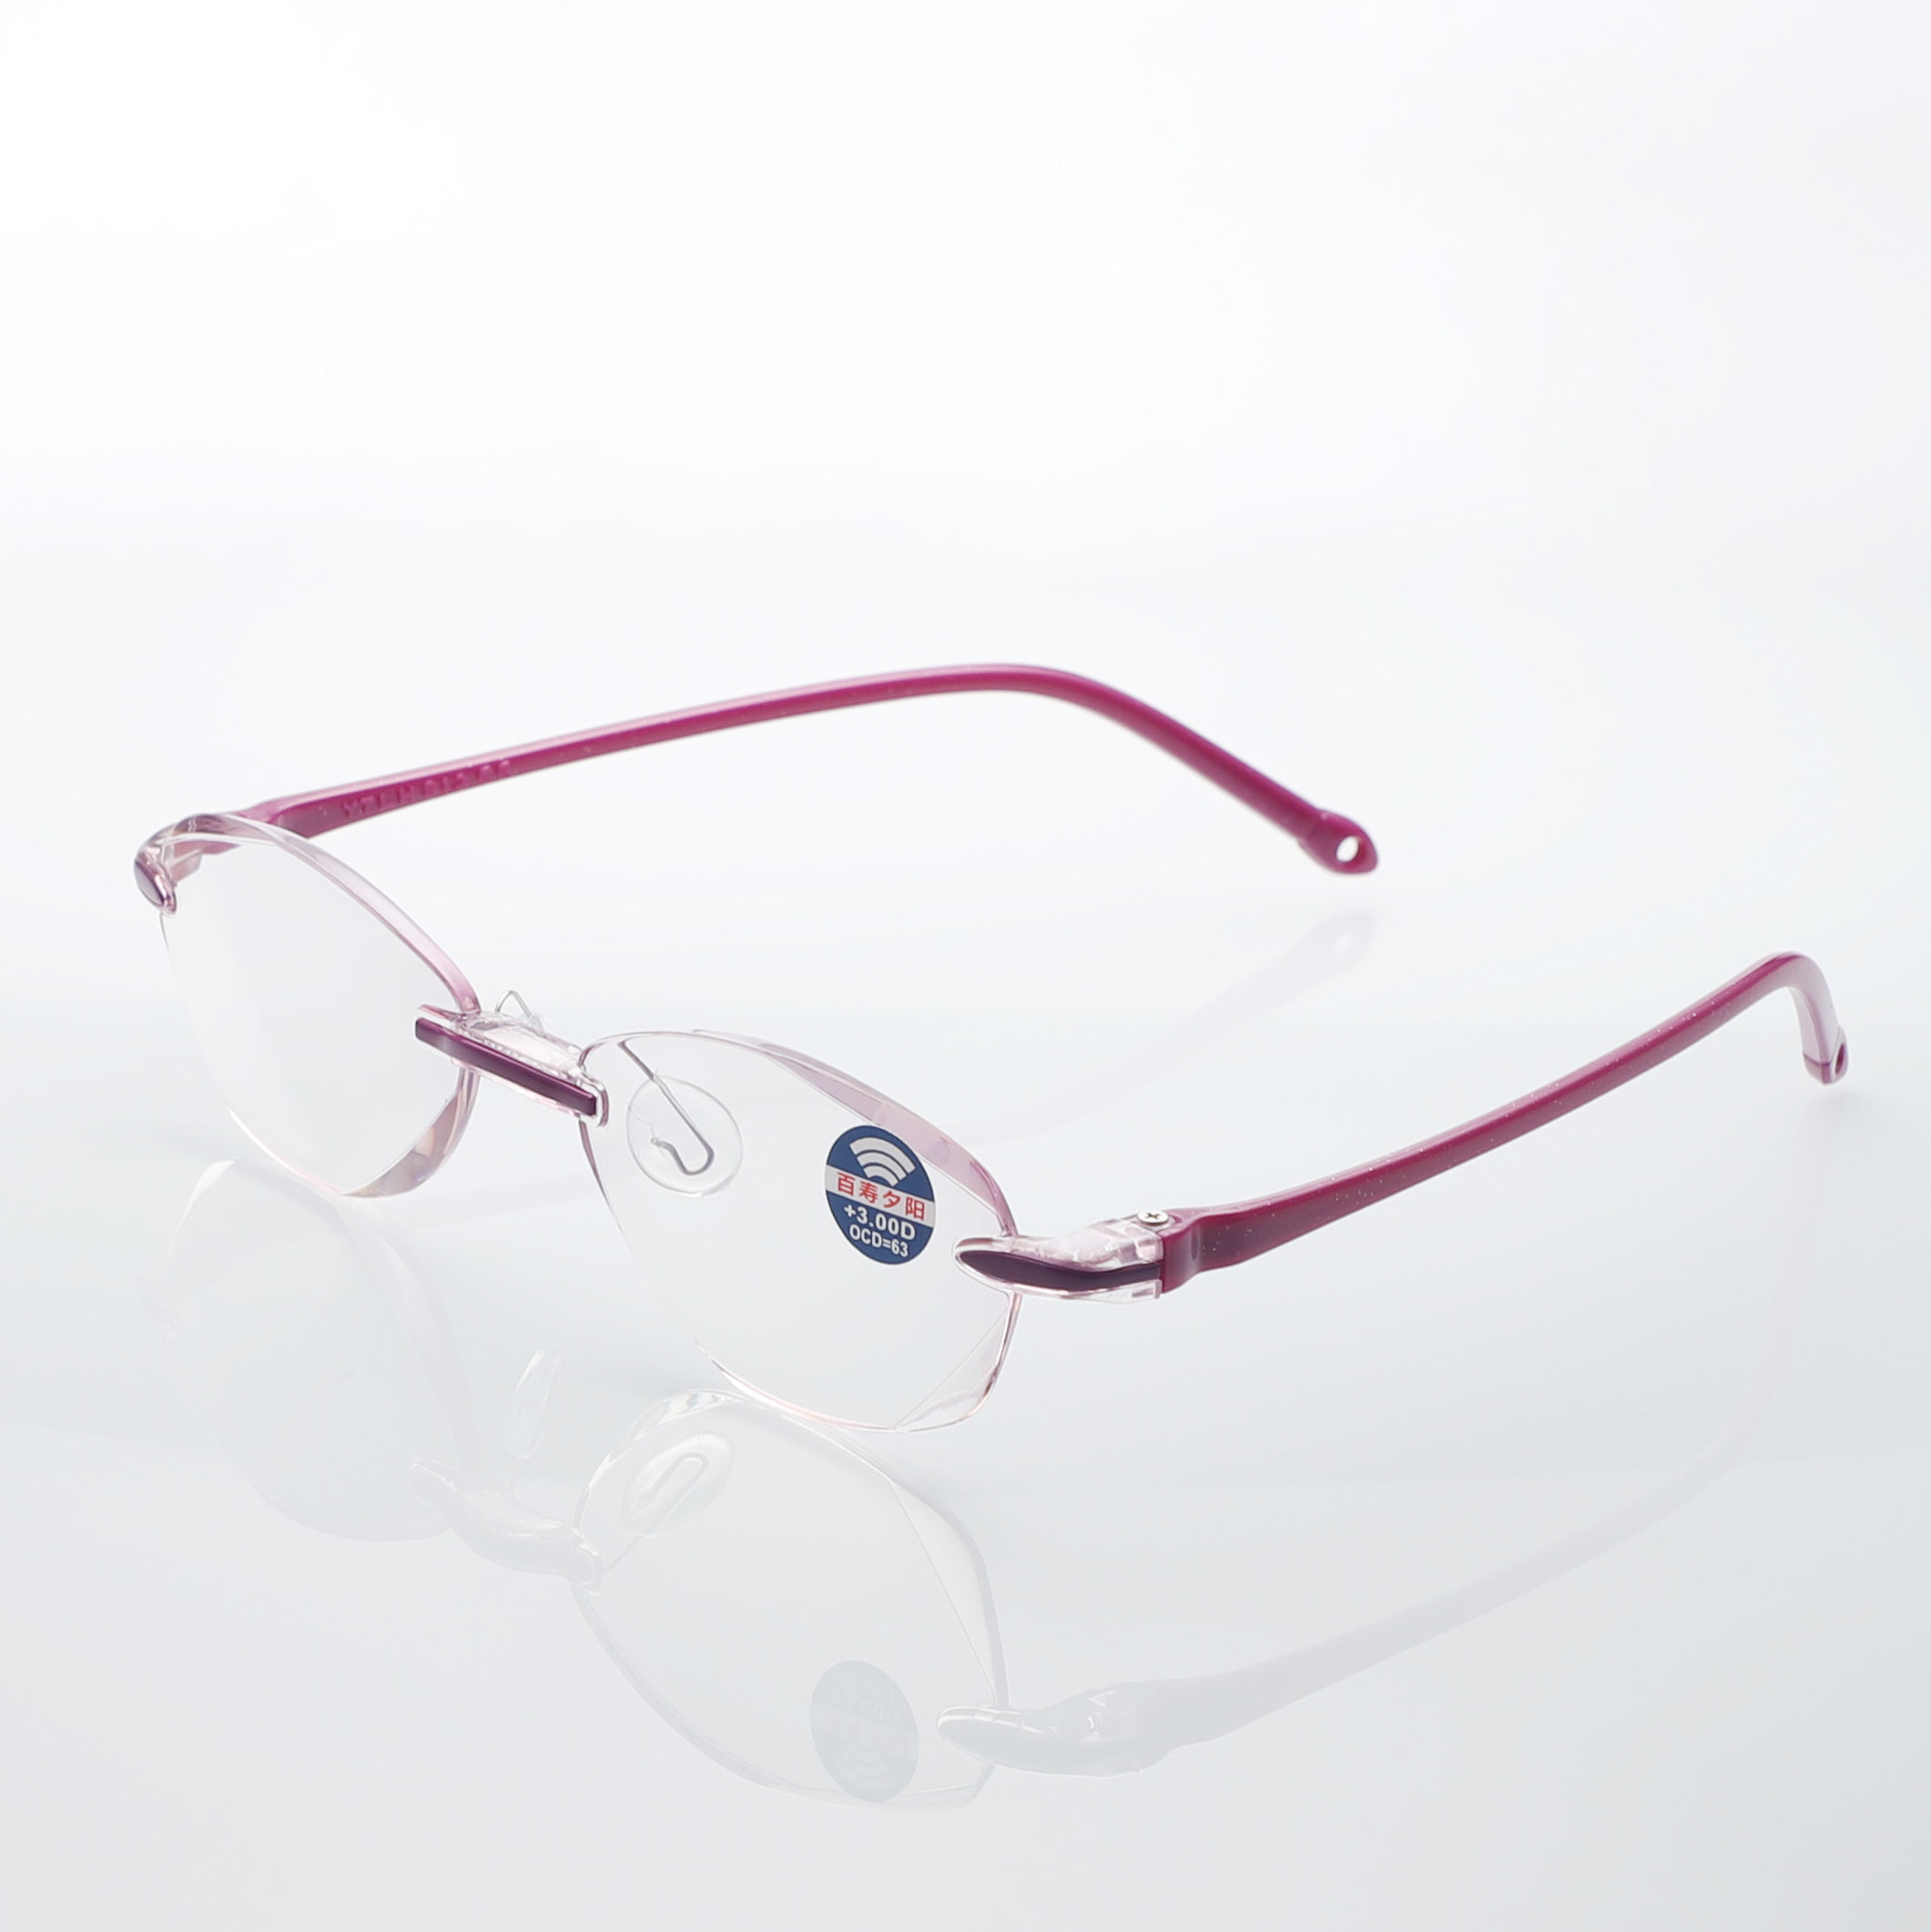 High quality luxury plastic frame glasses spectacles vogue reading eyewear for men